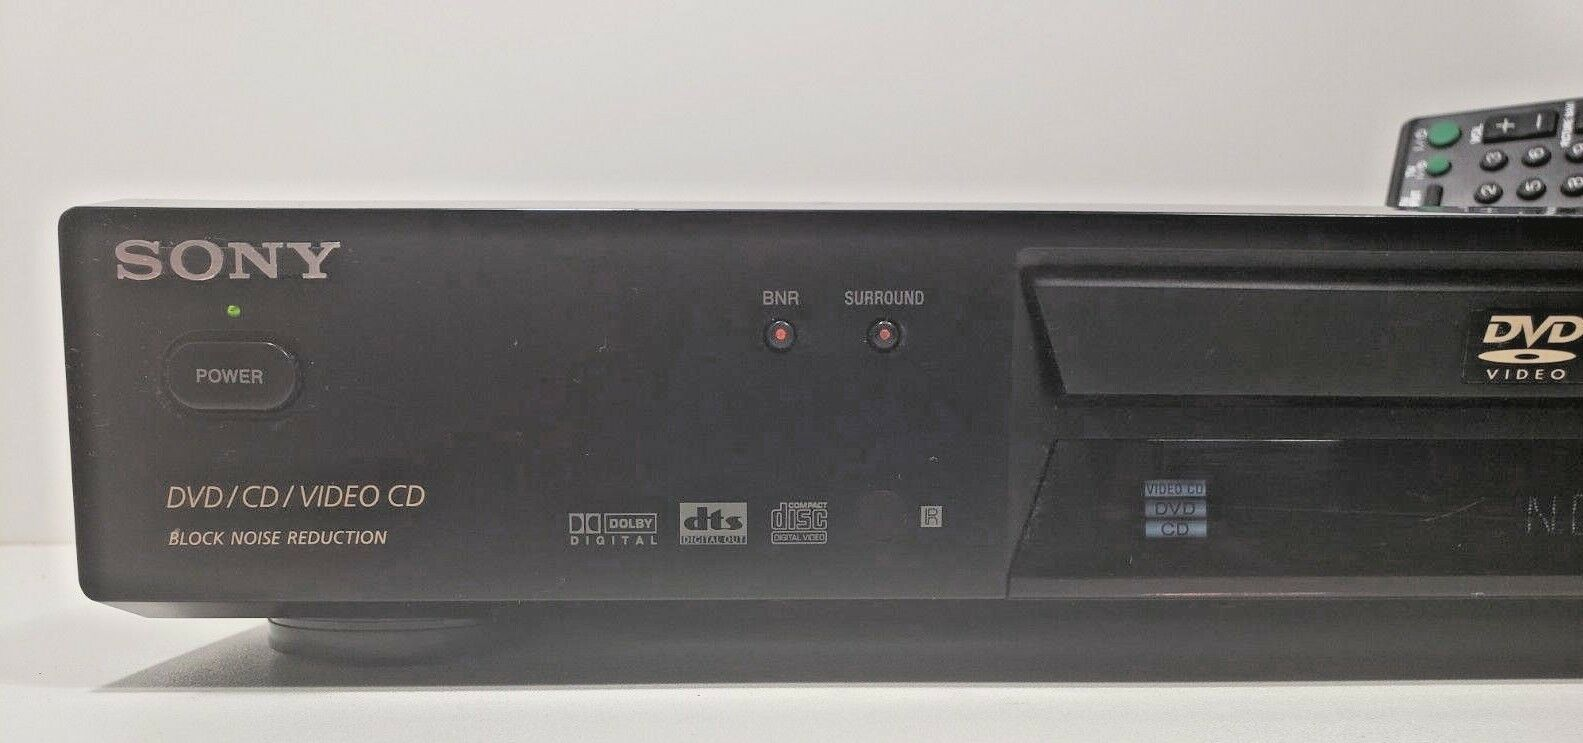 Sony DVP-NS300 CD/DVD/Video CD Player.. Tested with Remote image 2